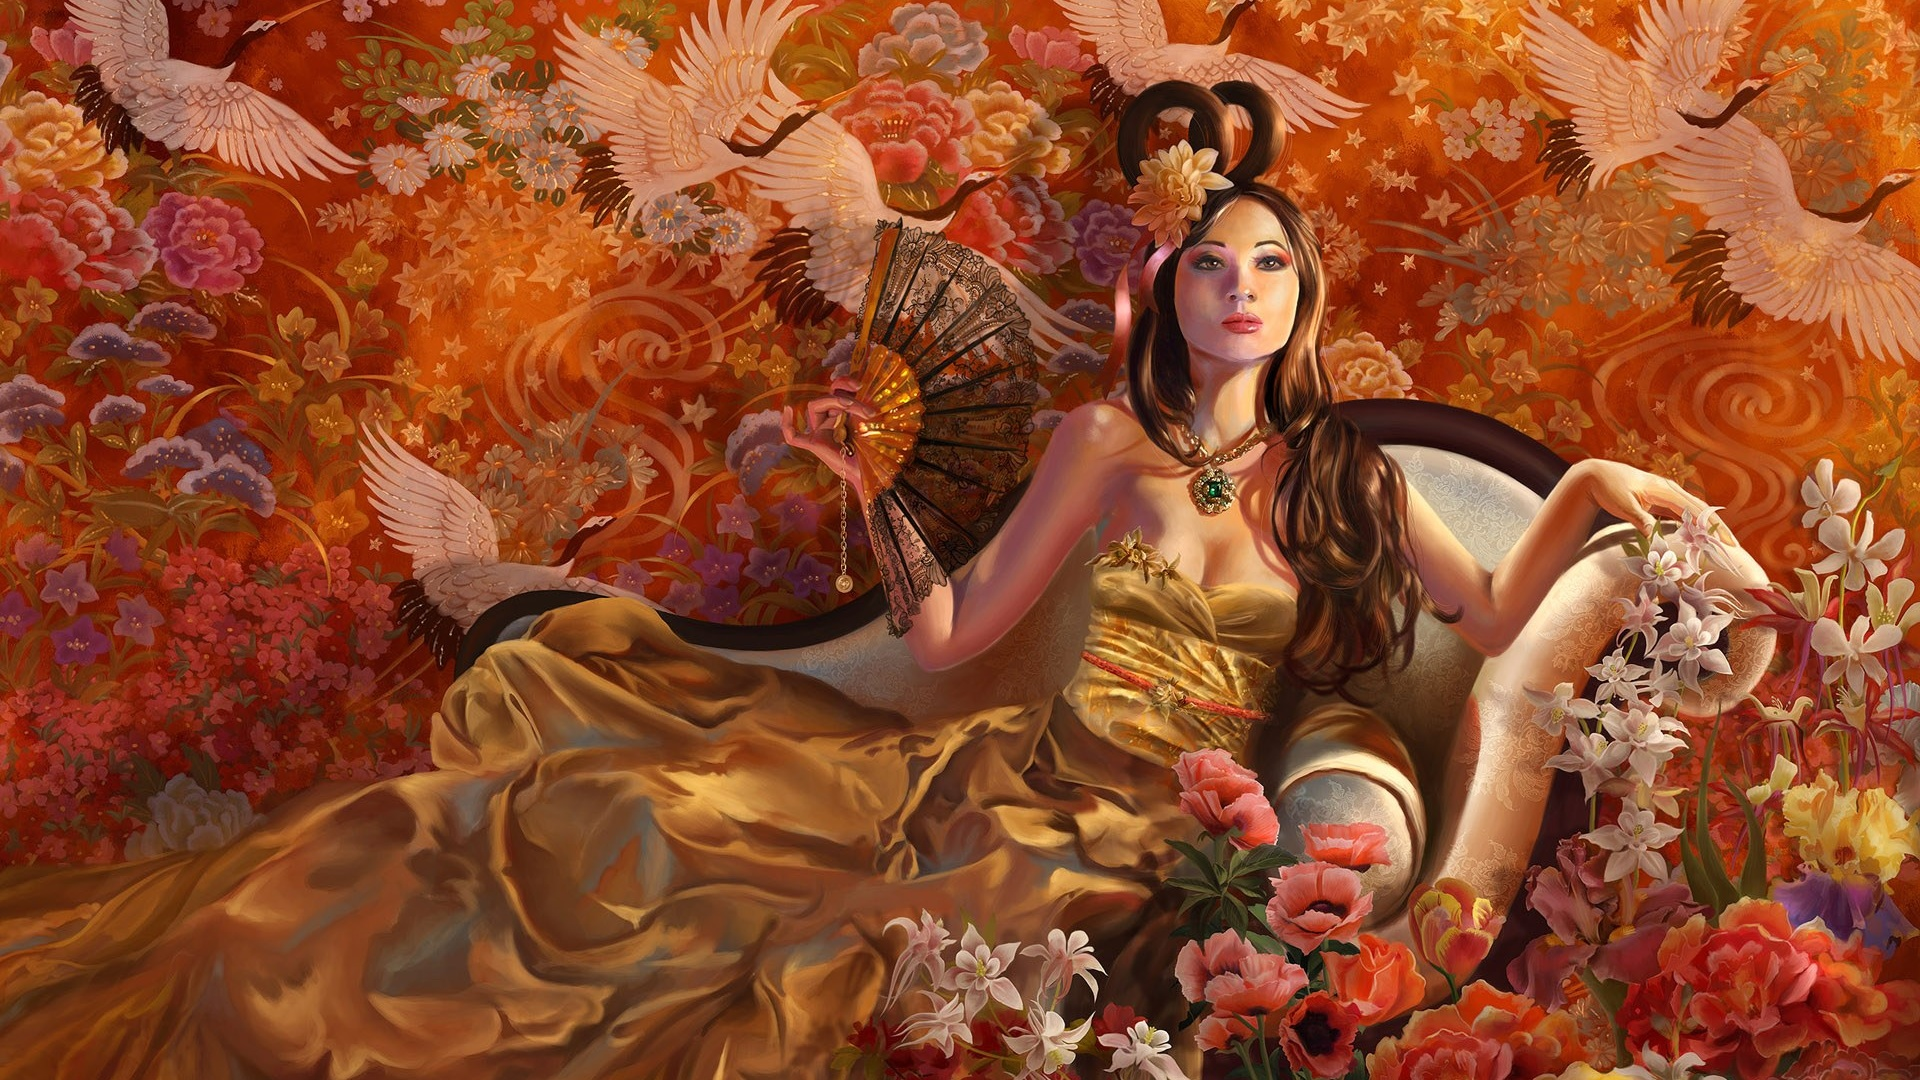 1920x1080 fantasy girl autumn desktop pc and mac wallpaper voltagebd Gallery